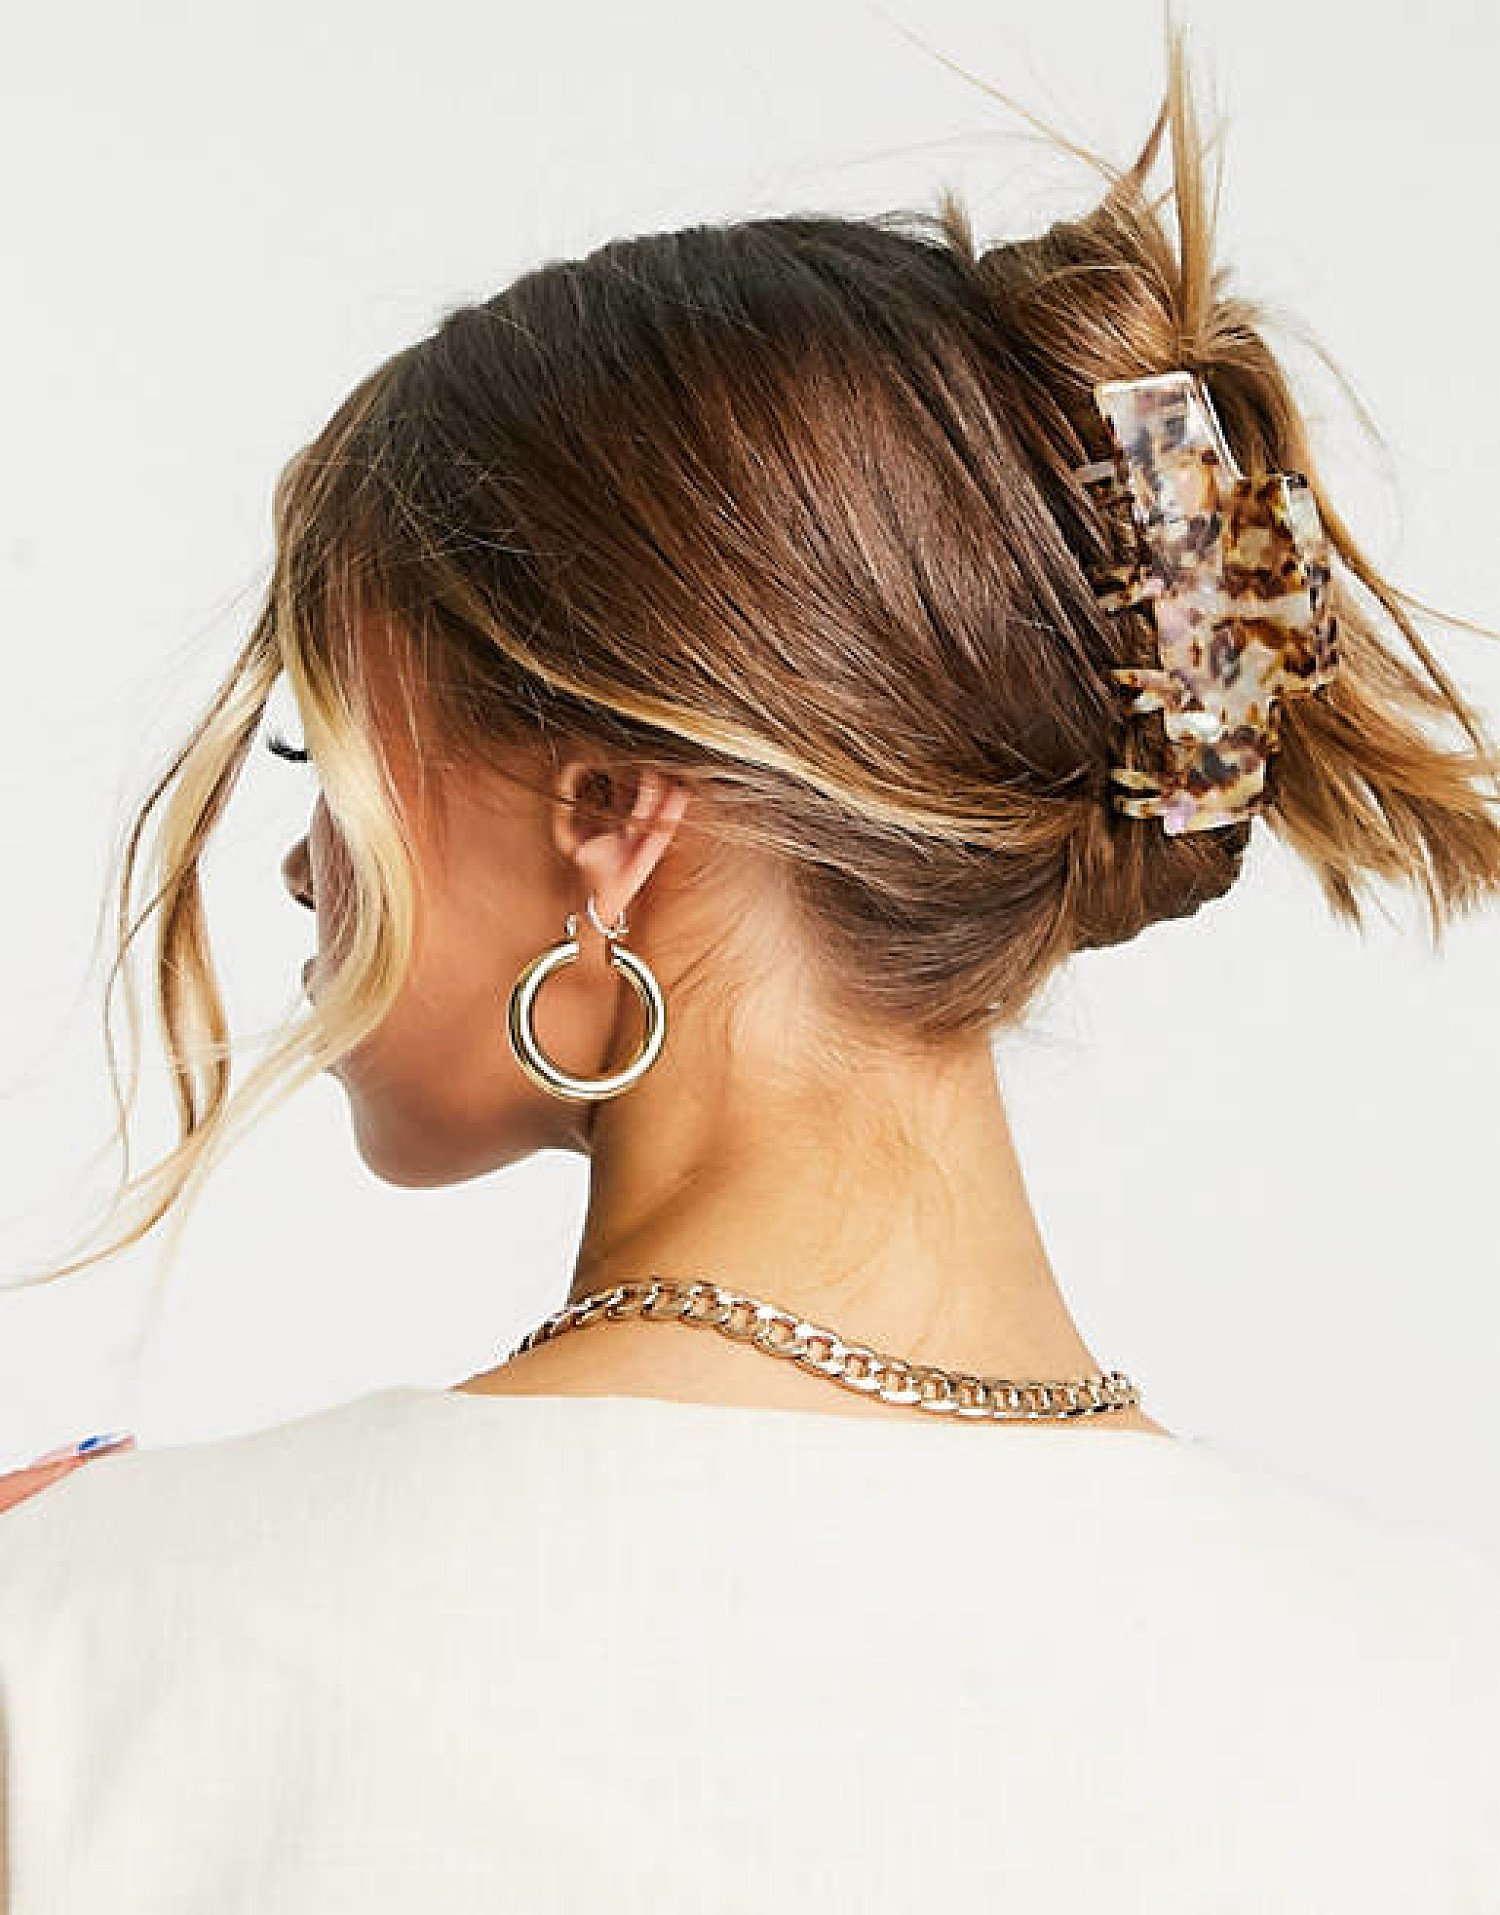 ASOS DESIGN hair clip claw with double prongs in pale tort current price - £8.00!